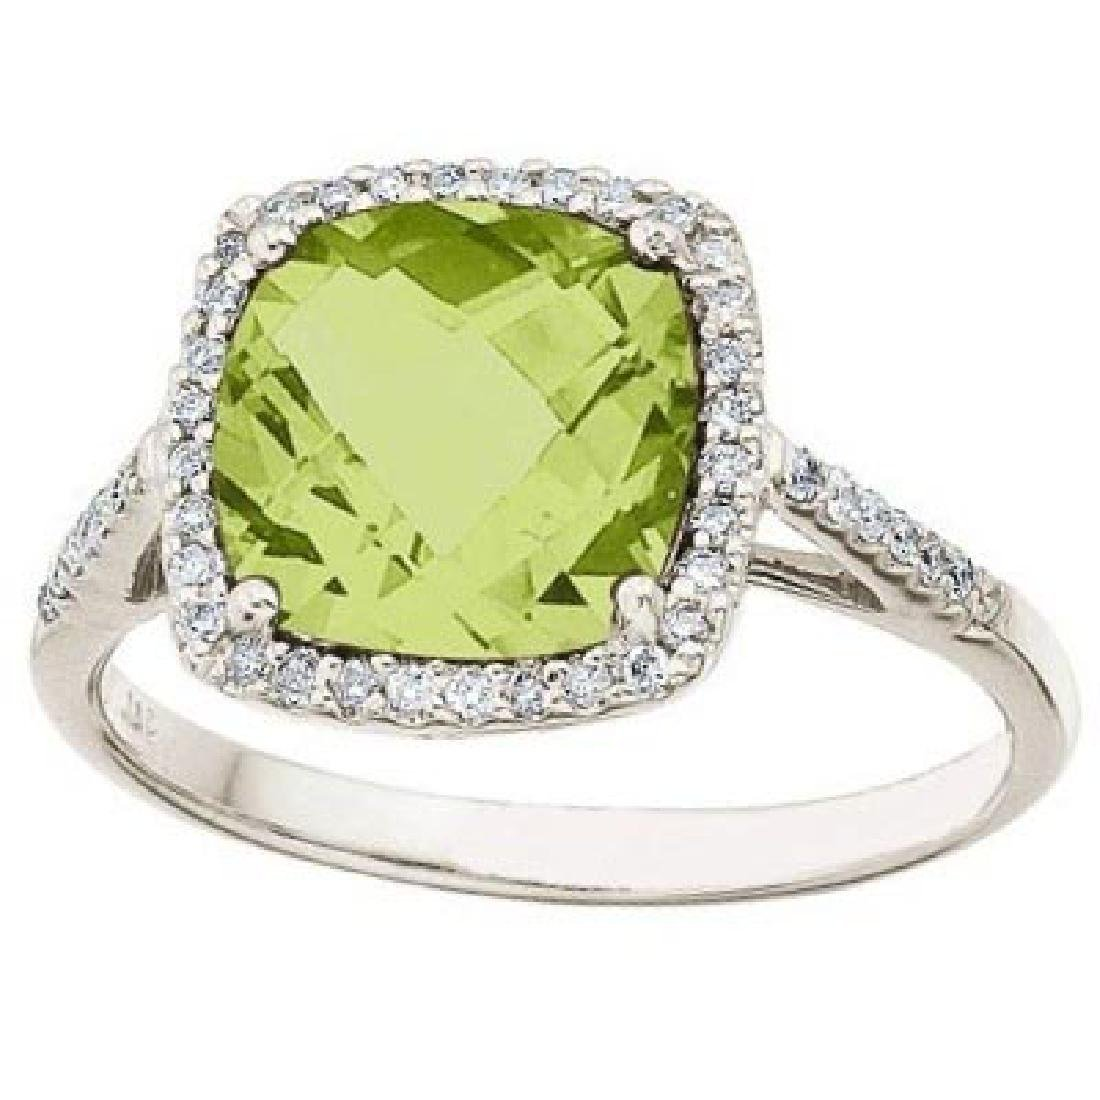 Cushion-Cut Peridot and Diamond Cocktail Ring 14k White